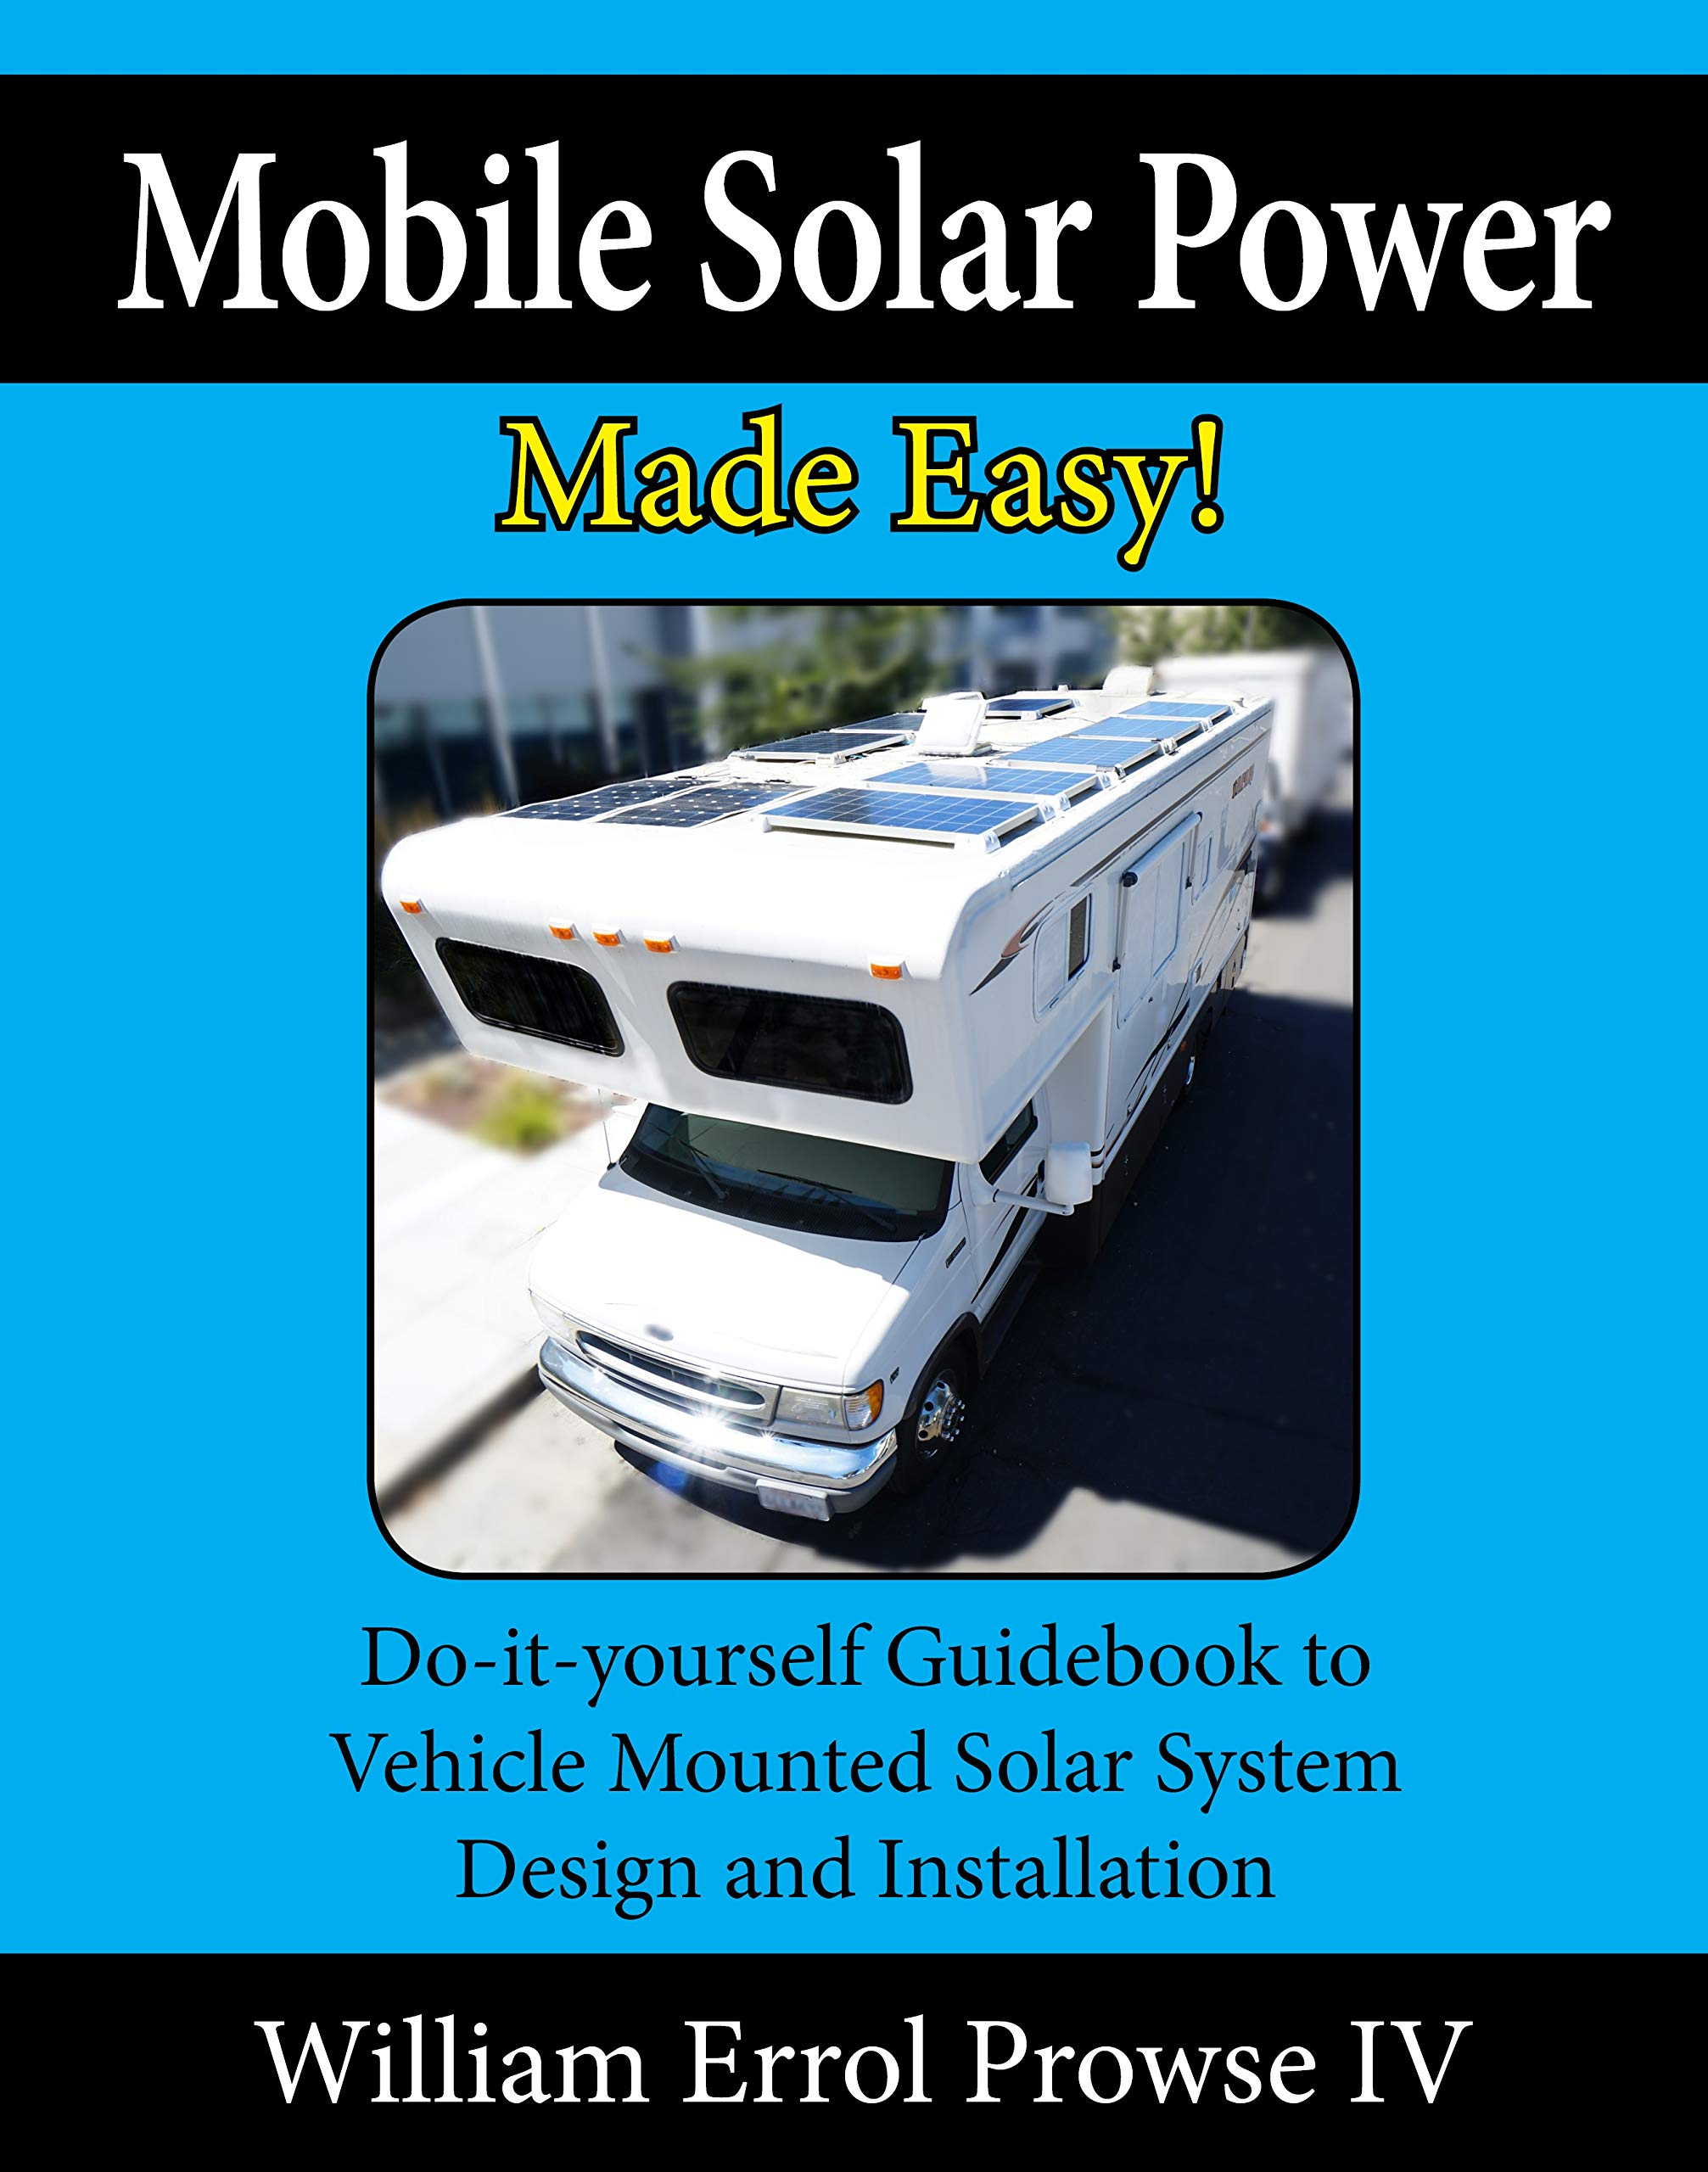 Mobile Solar Power Made Easy   Mobile 12 Volt Off Grid Solar System Design And Installation. RV's Vans Cars And Boats  Do It Yourself Step By Step Instructions  English Edition